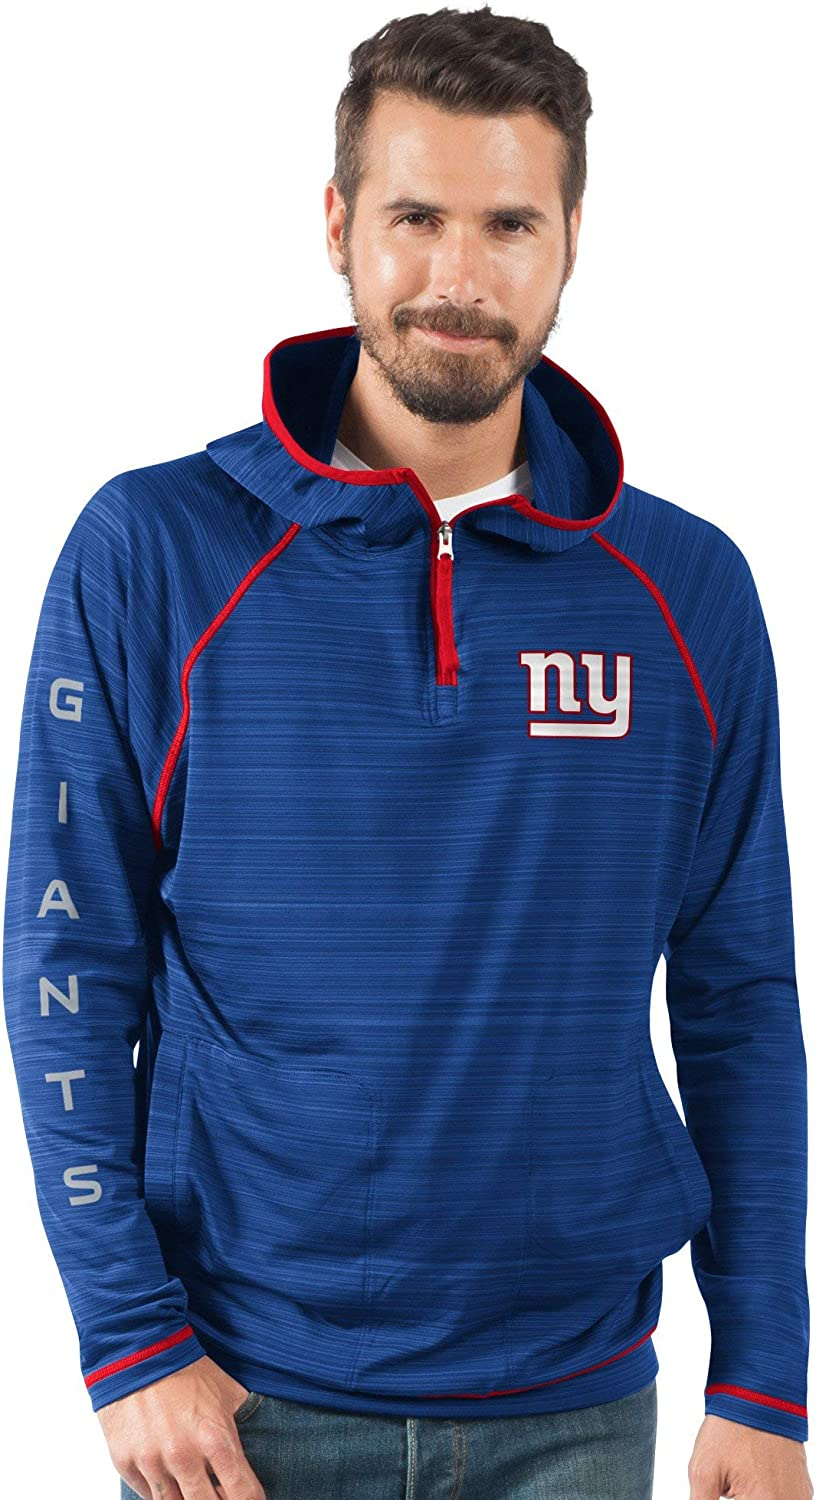 826 Licensed Sports Apparel Giants Football Mens Royal Blue Space Dye Lightweight Pullover Hooded Jacket